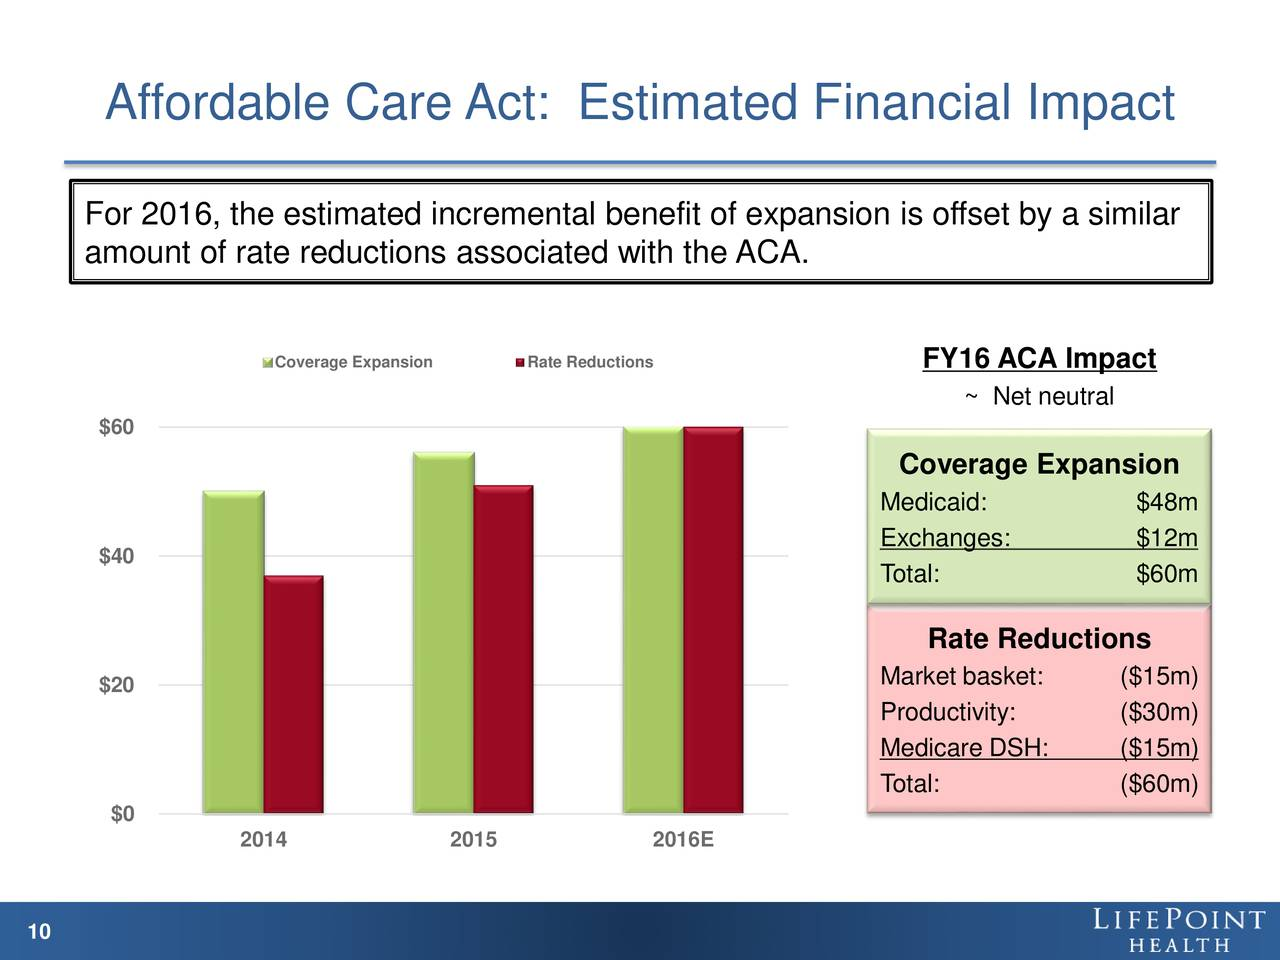 impact of affordable care act in north Read the case study about the impact of the affordable care act on north carolina's uninsured population on pages to complete this assignment, write a 3- to 5-page paper that addresses the following: explain the impact of the affordable care act on the population that it affected.